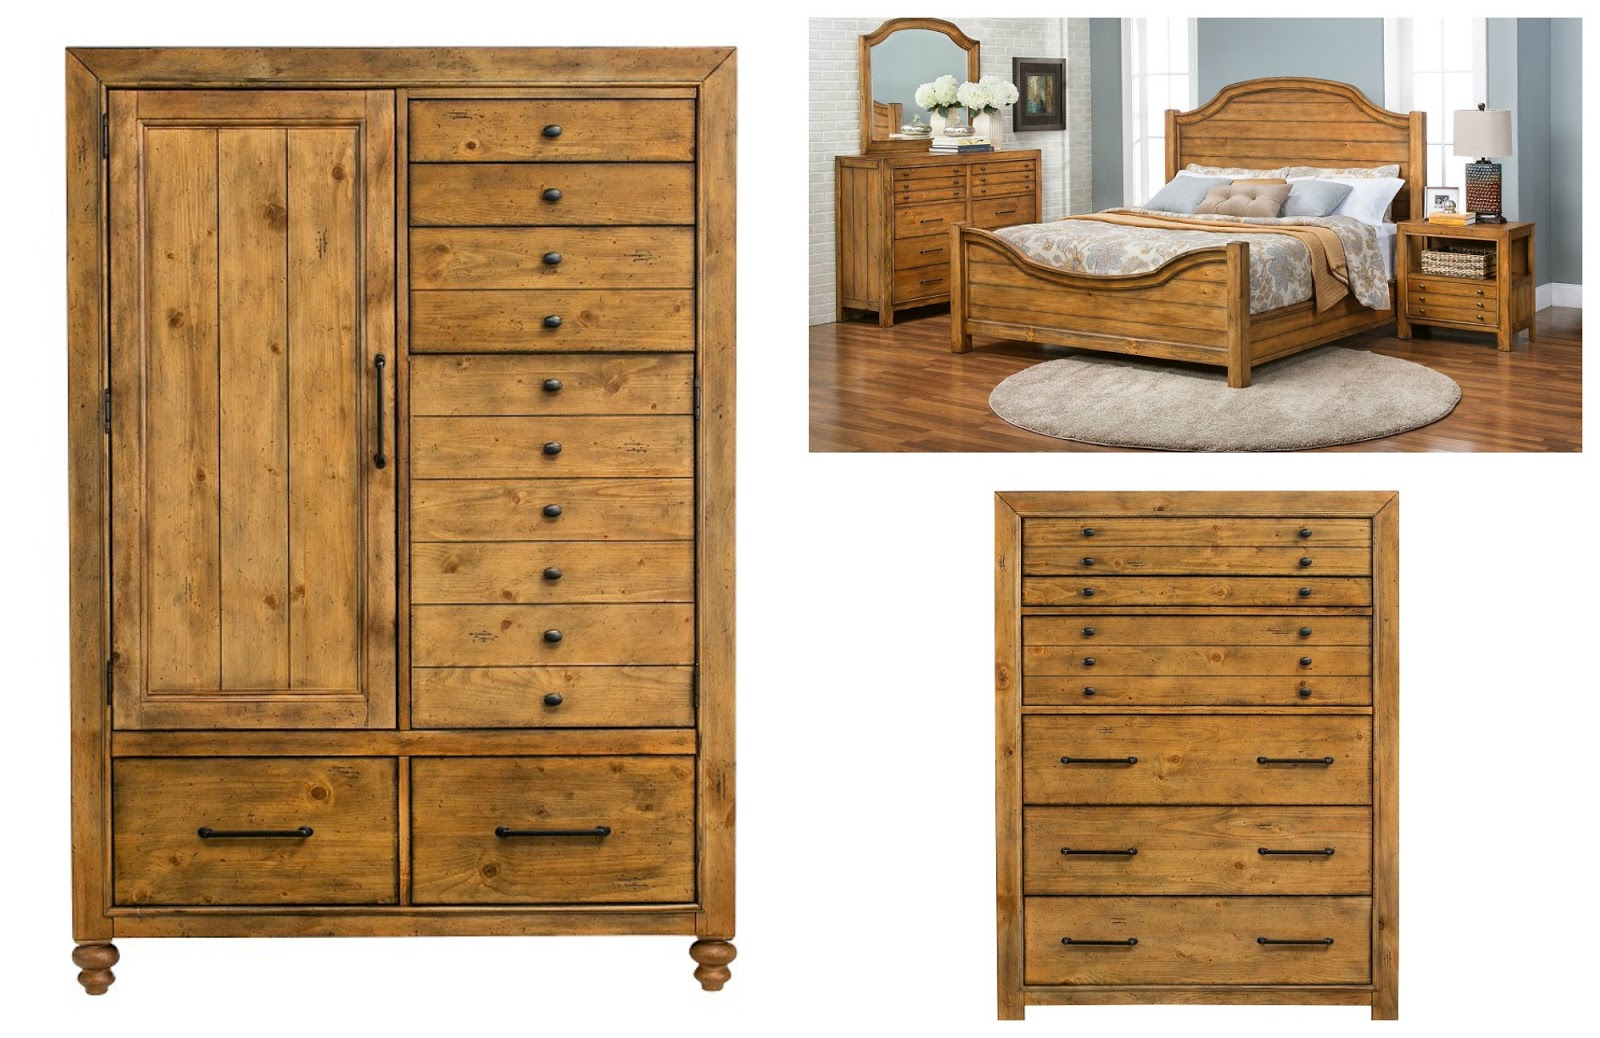 Slumberland Furniture Store Osage Beach Mo Our Quality Broyhill Bedroom Furniture